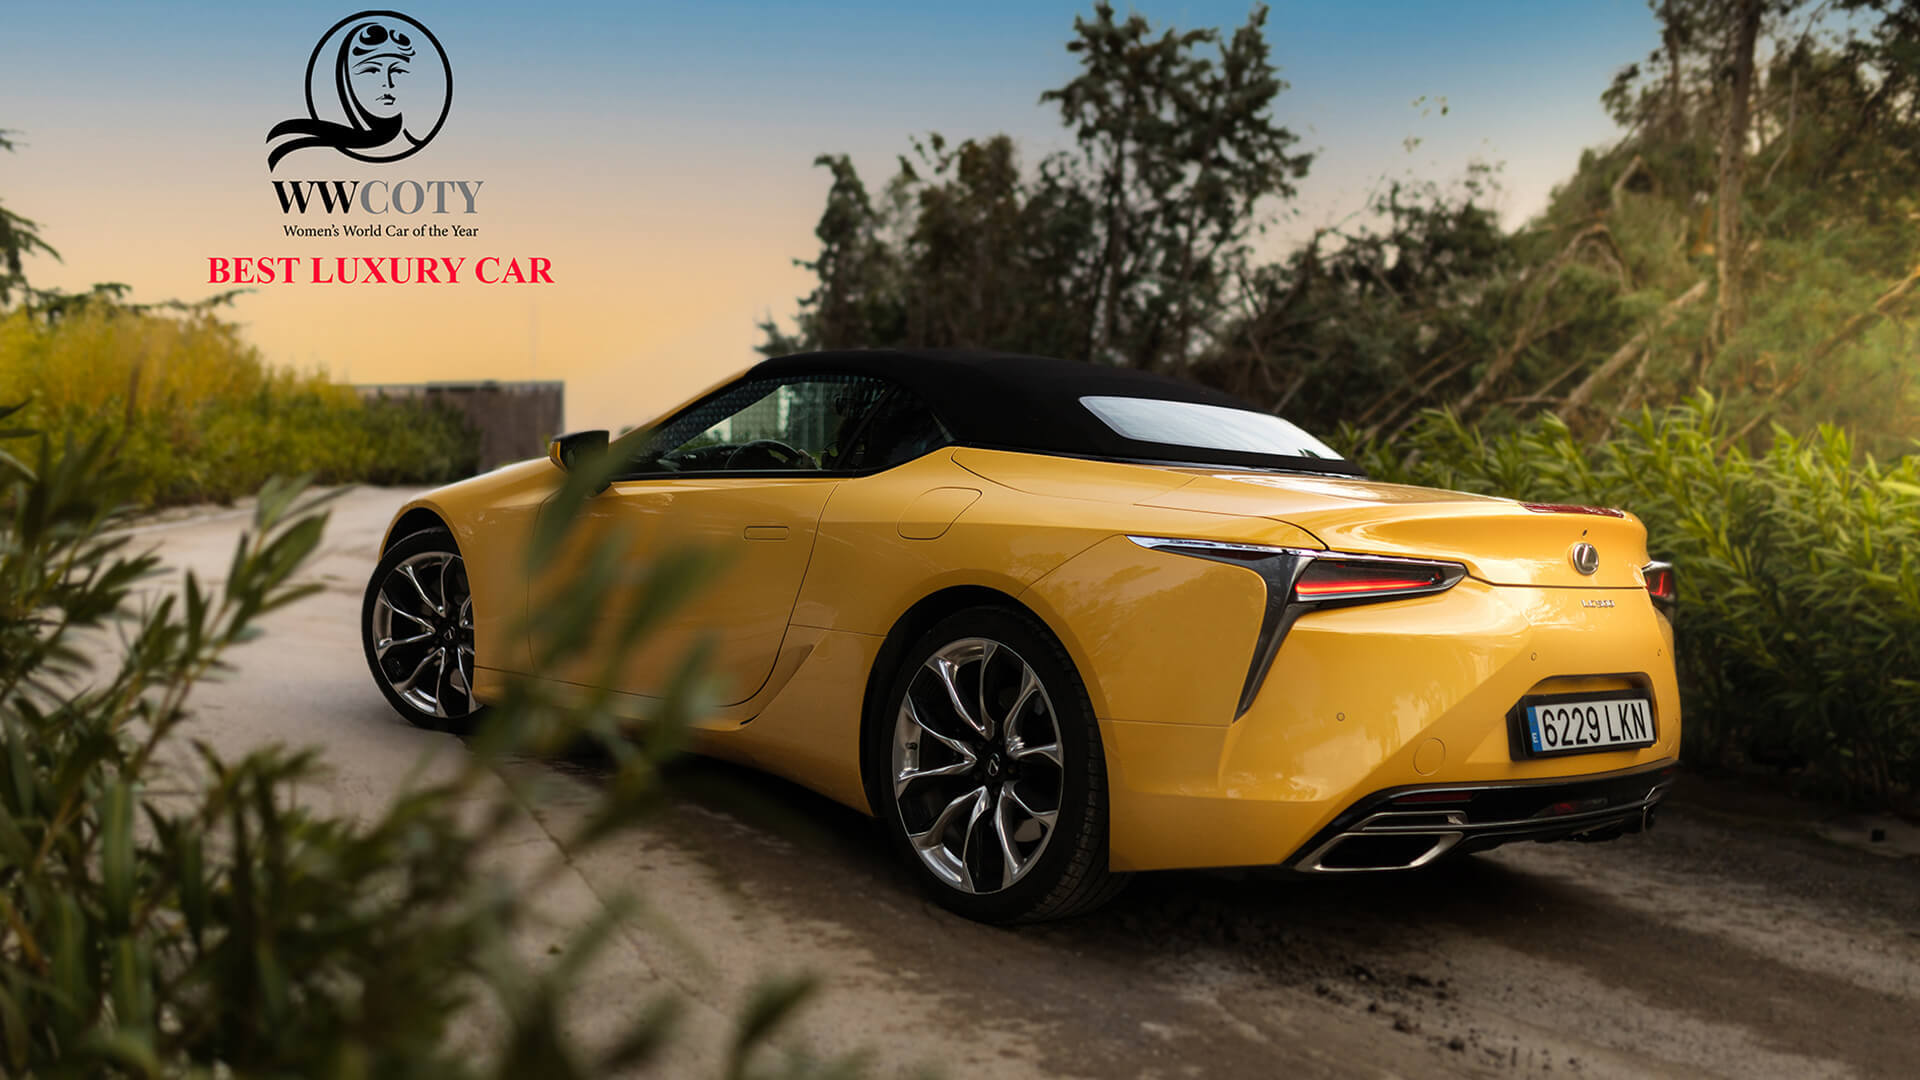 LC Convertible Best Luxury Car Award Hero Image